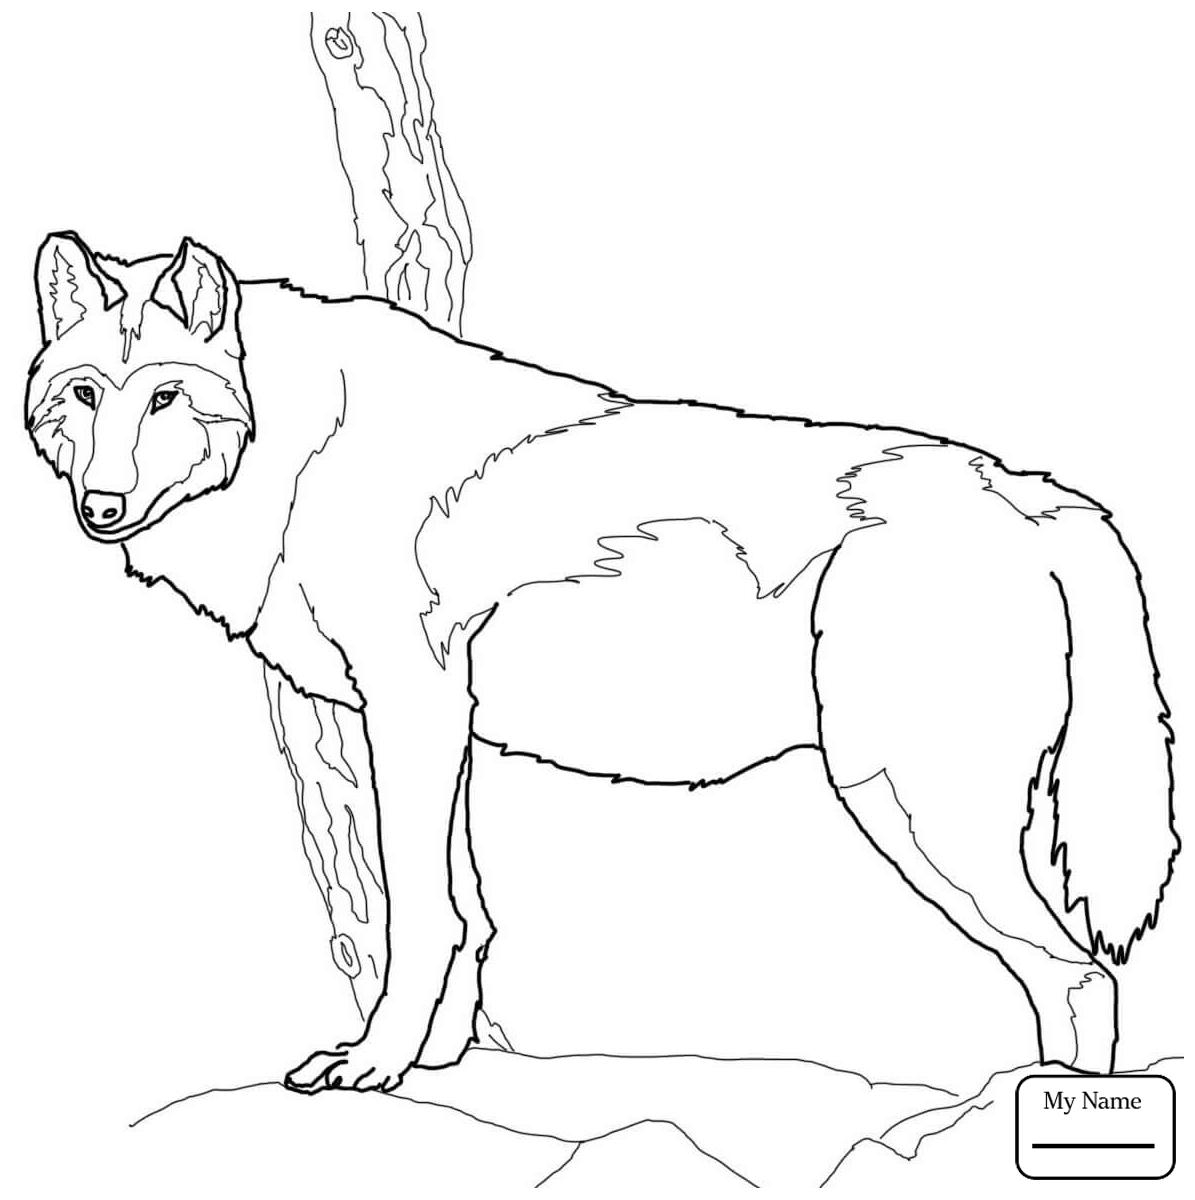 Arctic Wolf Drawing at GetDrawings.com | Free for personal use ...